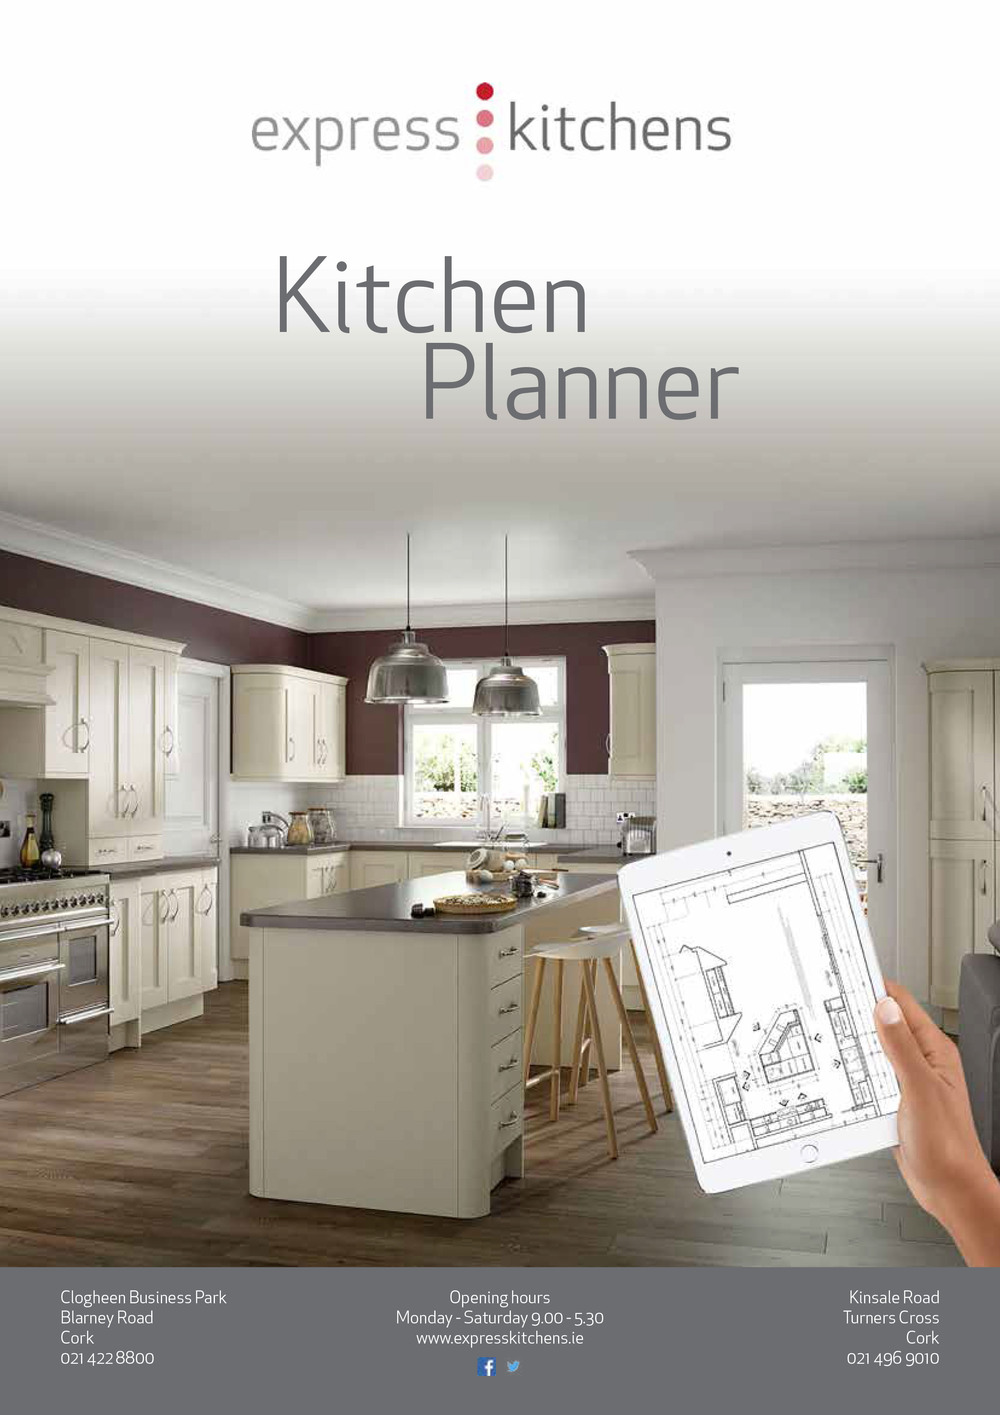 wonderful How To Get A Free Kitchen #2: You can download or print off our free, invaluable kitchen planner today. Its full of great tips for how to layout your new ...